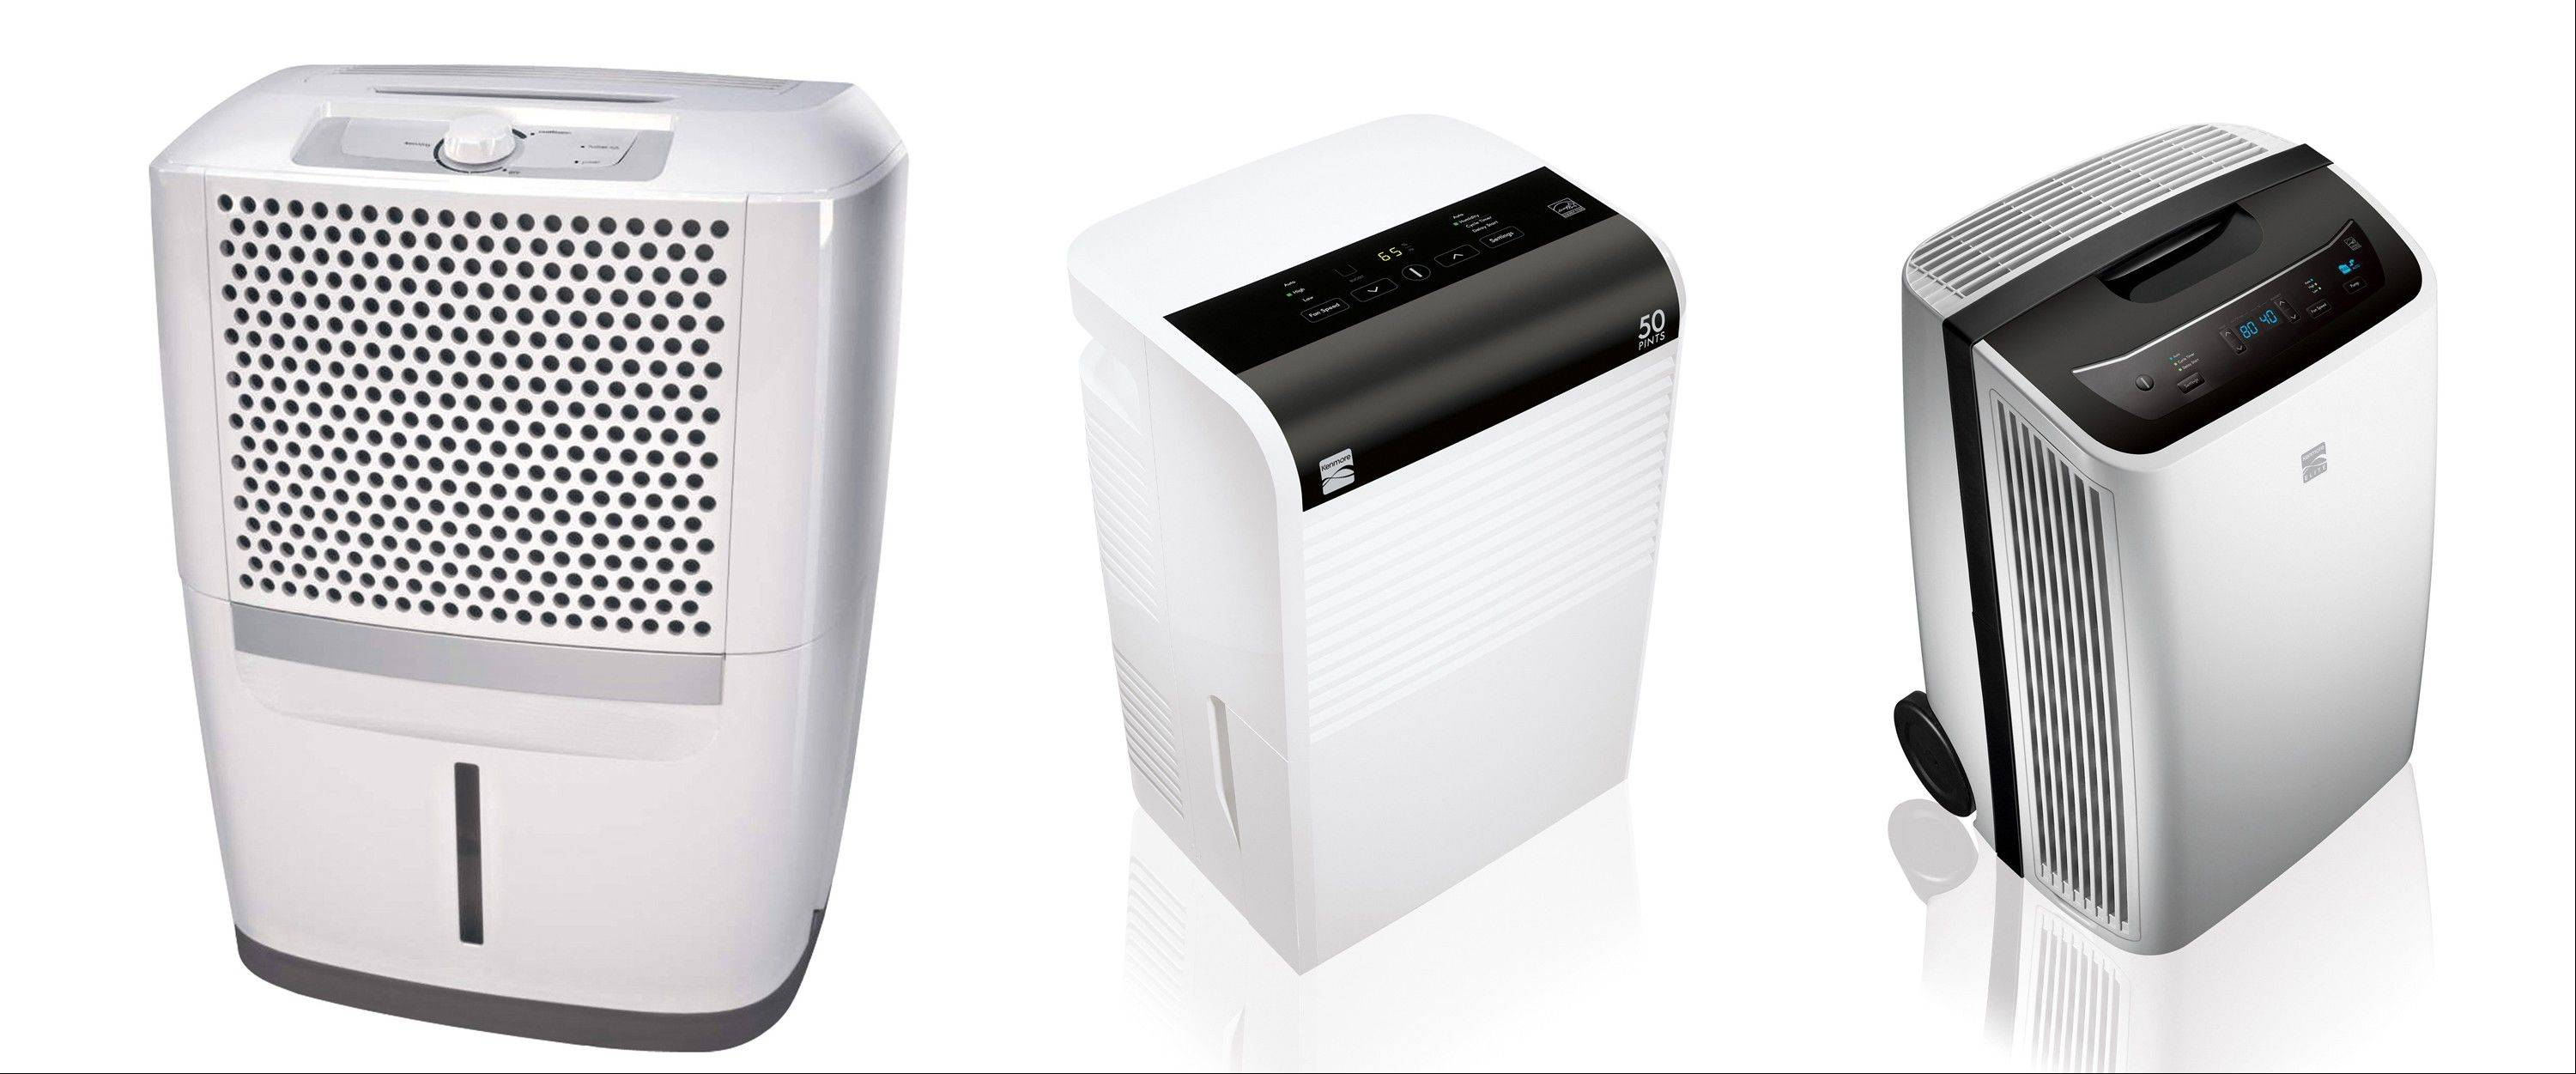 With wet, muggy weather common in the Midwest, homeowners are turning on their dehumidifiers to take moisture out of the air. Some examples are, from left, the Frigidaire 30-pint dehumidifier, the Kenmore 50-pint dehumidifier and the Kenmore Elite 70-pint dehumidifier.